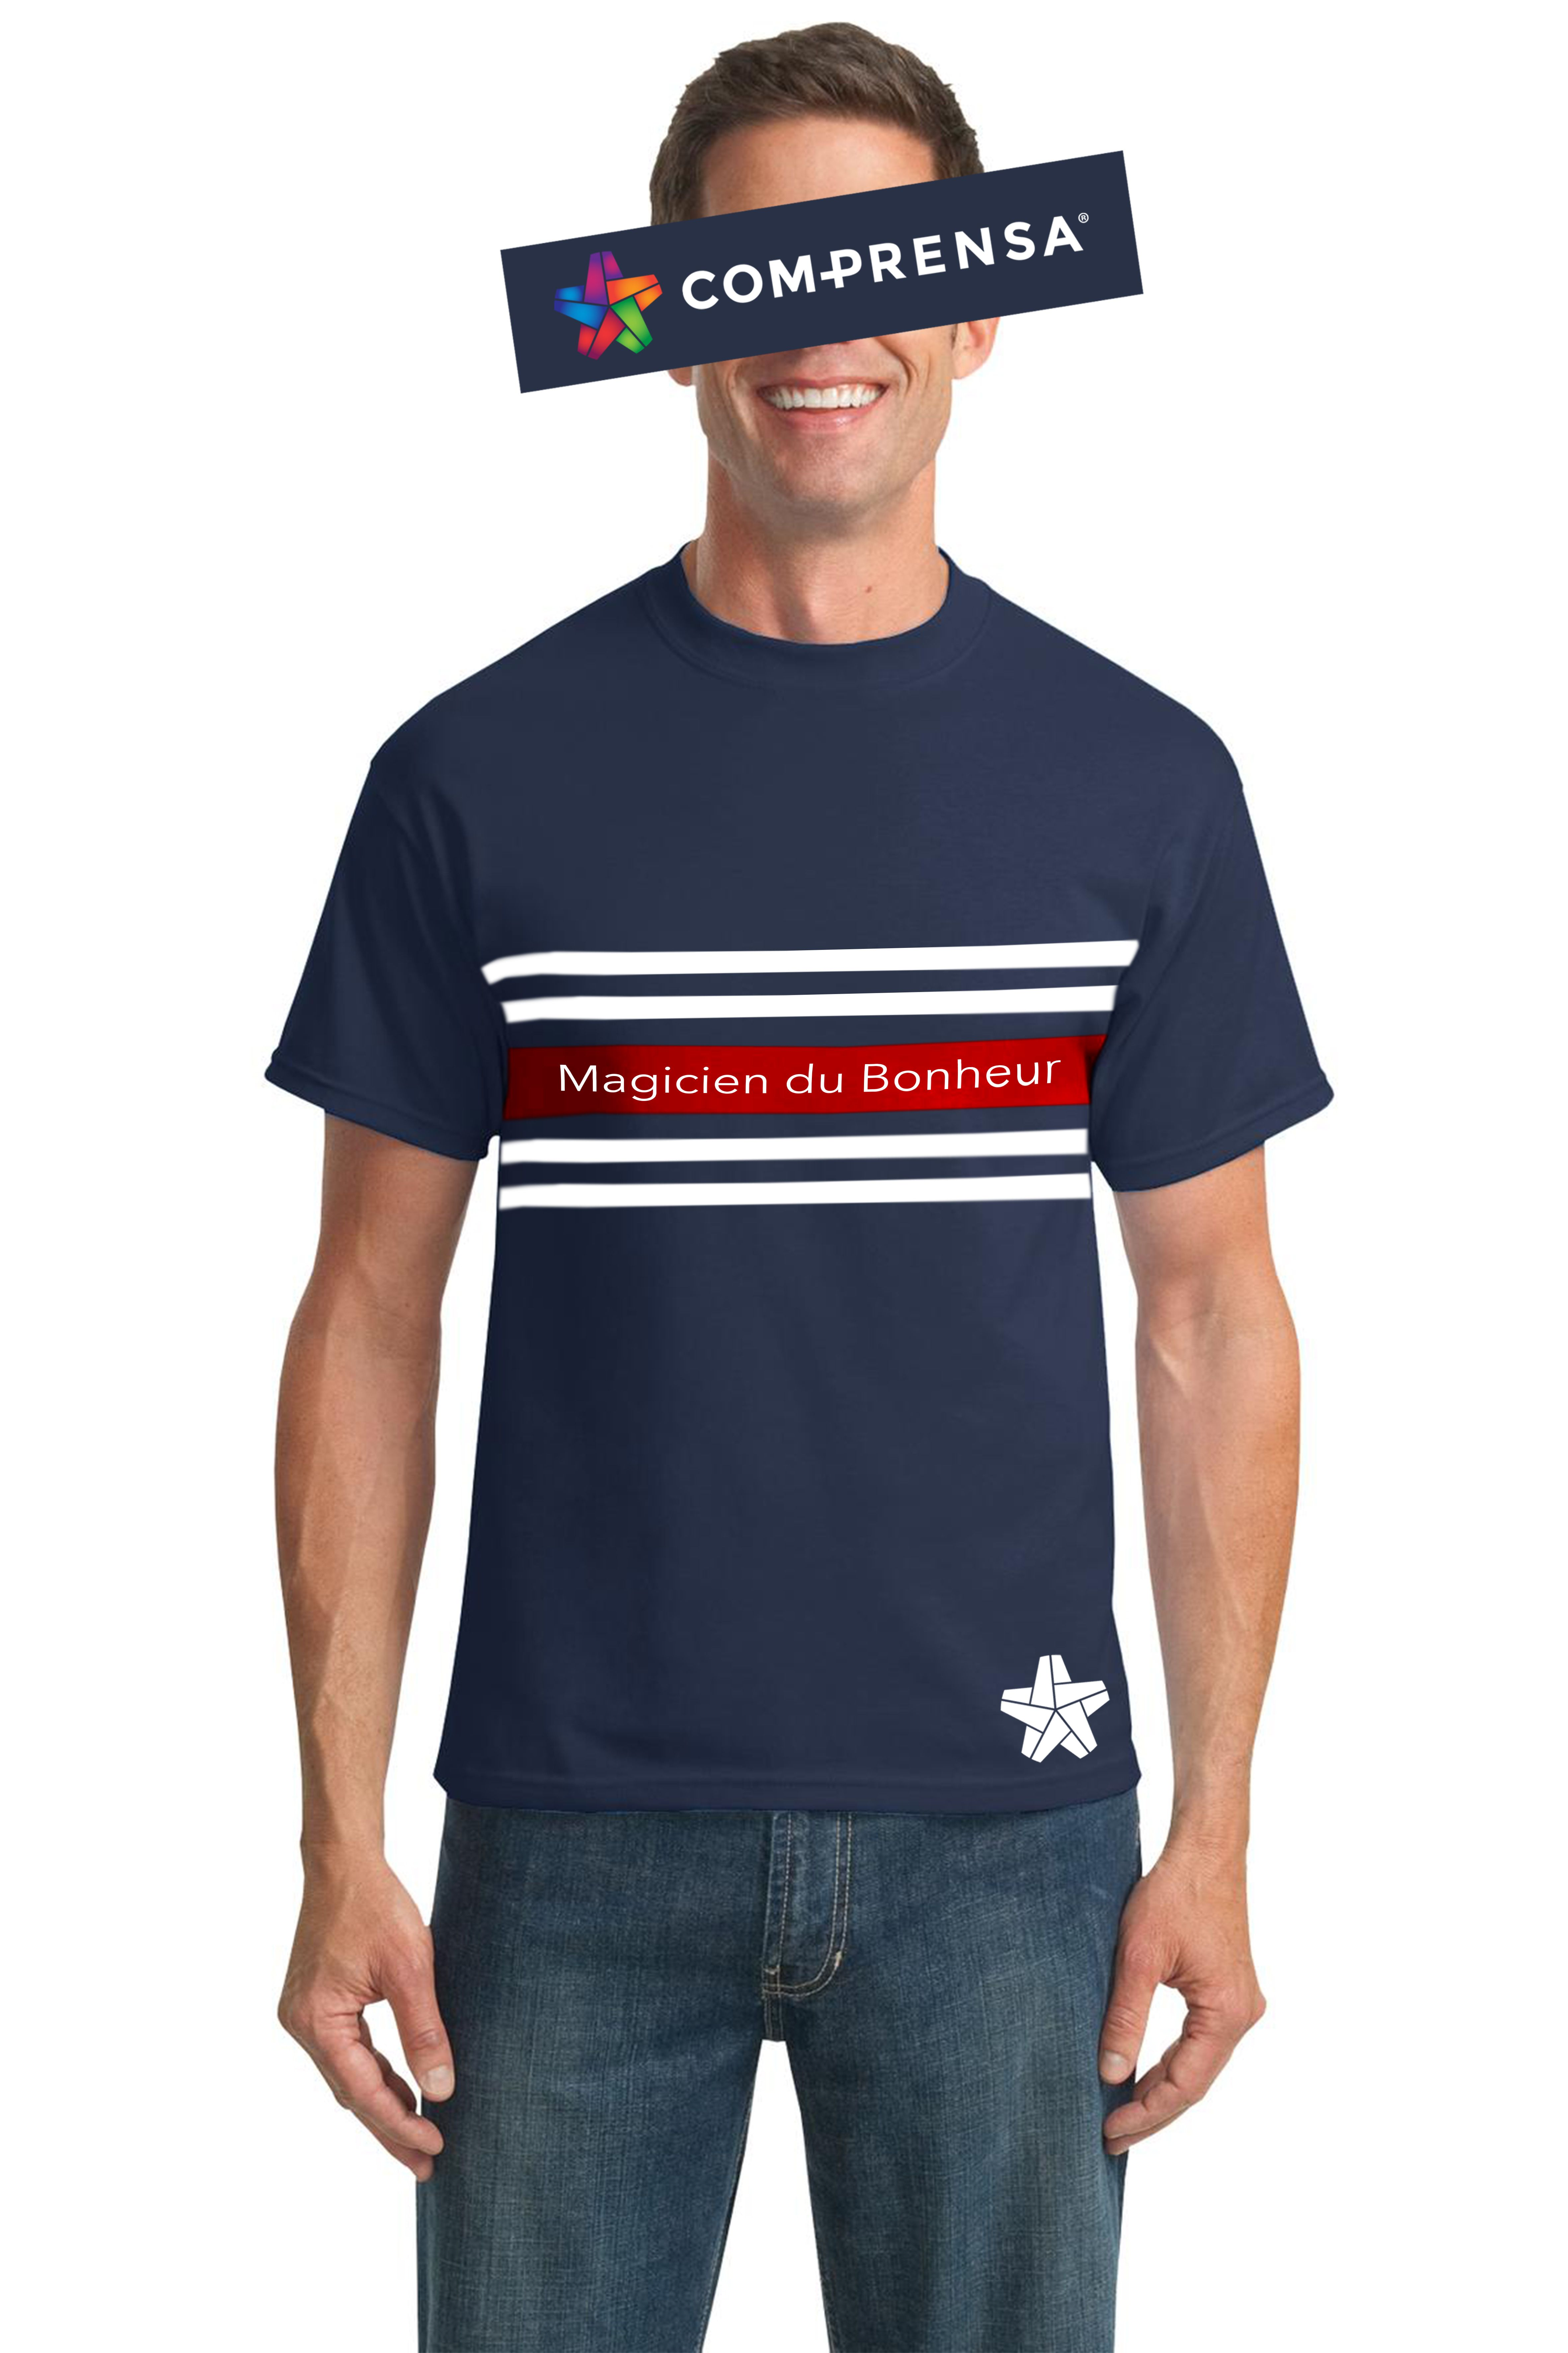 """T-shirt in navy cotton, from Com-Prensa, featuring a round neck, short sleeves, stripes to the chest, witha print """"Magicien du Bonheur.  #comprensa #model #fashion #manufacturer #design #company #textile #portugal #jersey #fleece #cotton #bio #sublimation #screenprinting #digitalprint #laser #photoprint"""